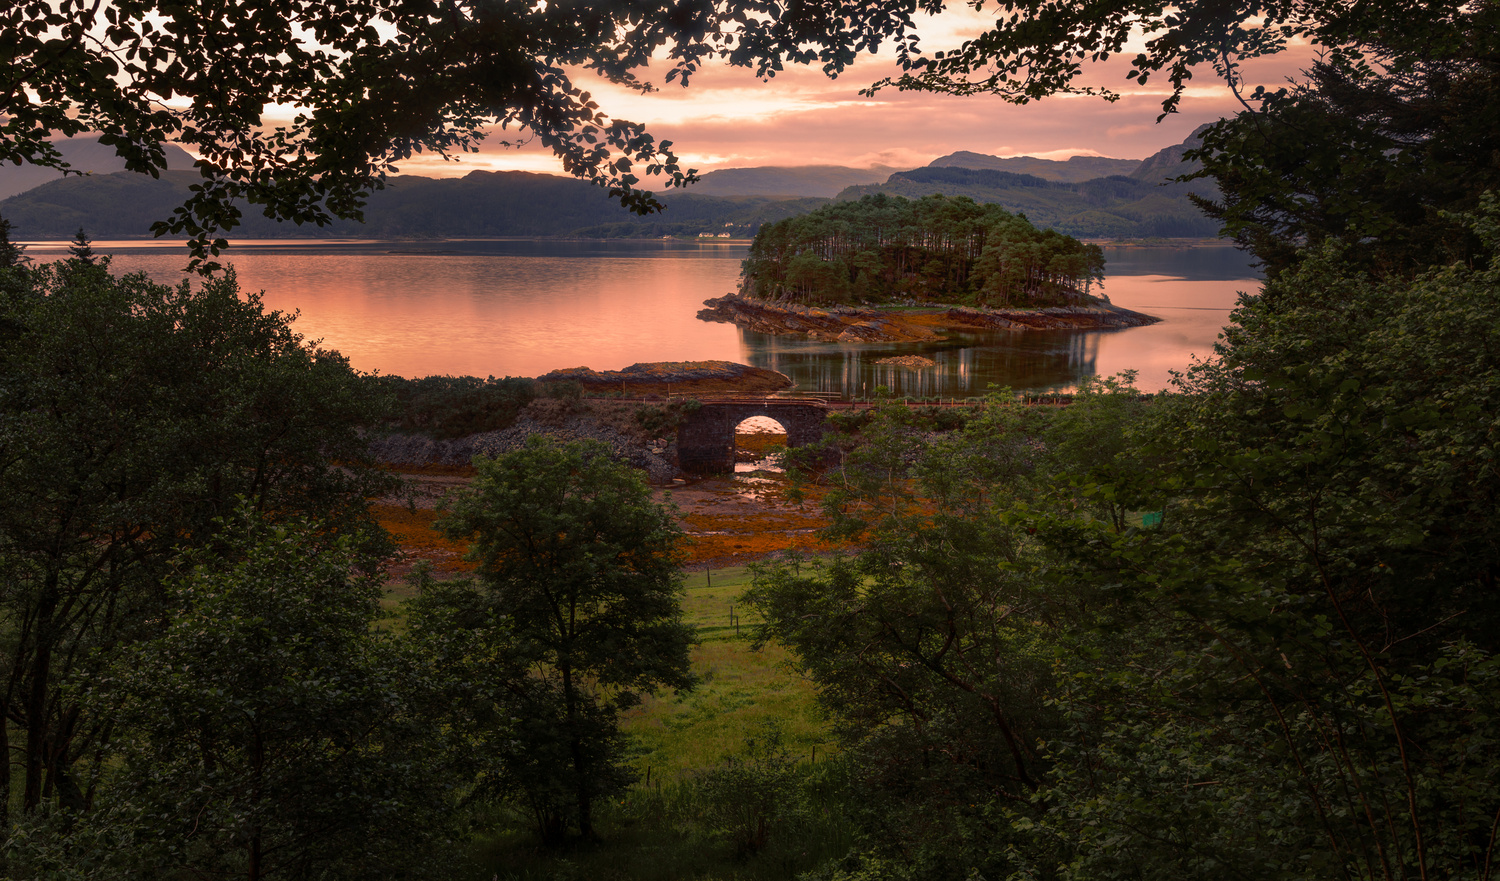 Sunset on Loch Carron by Nic Cameron